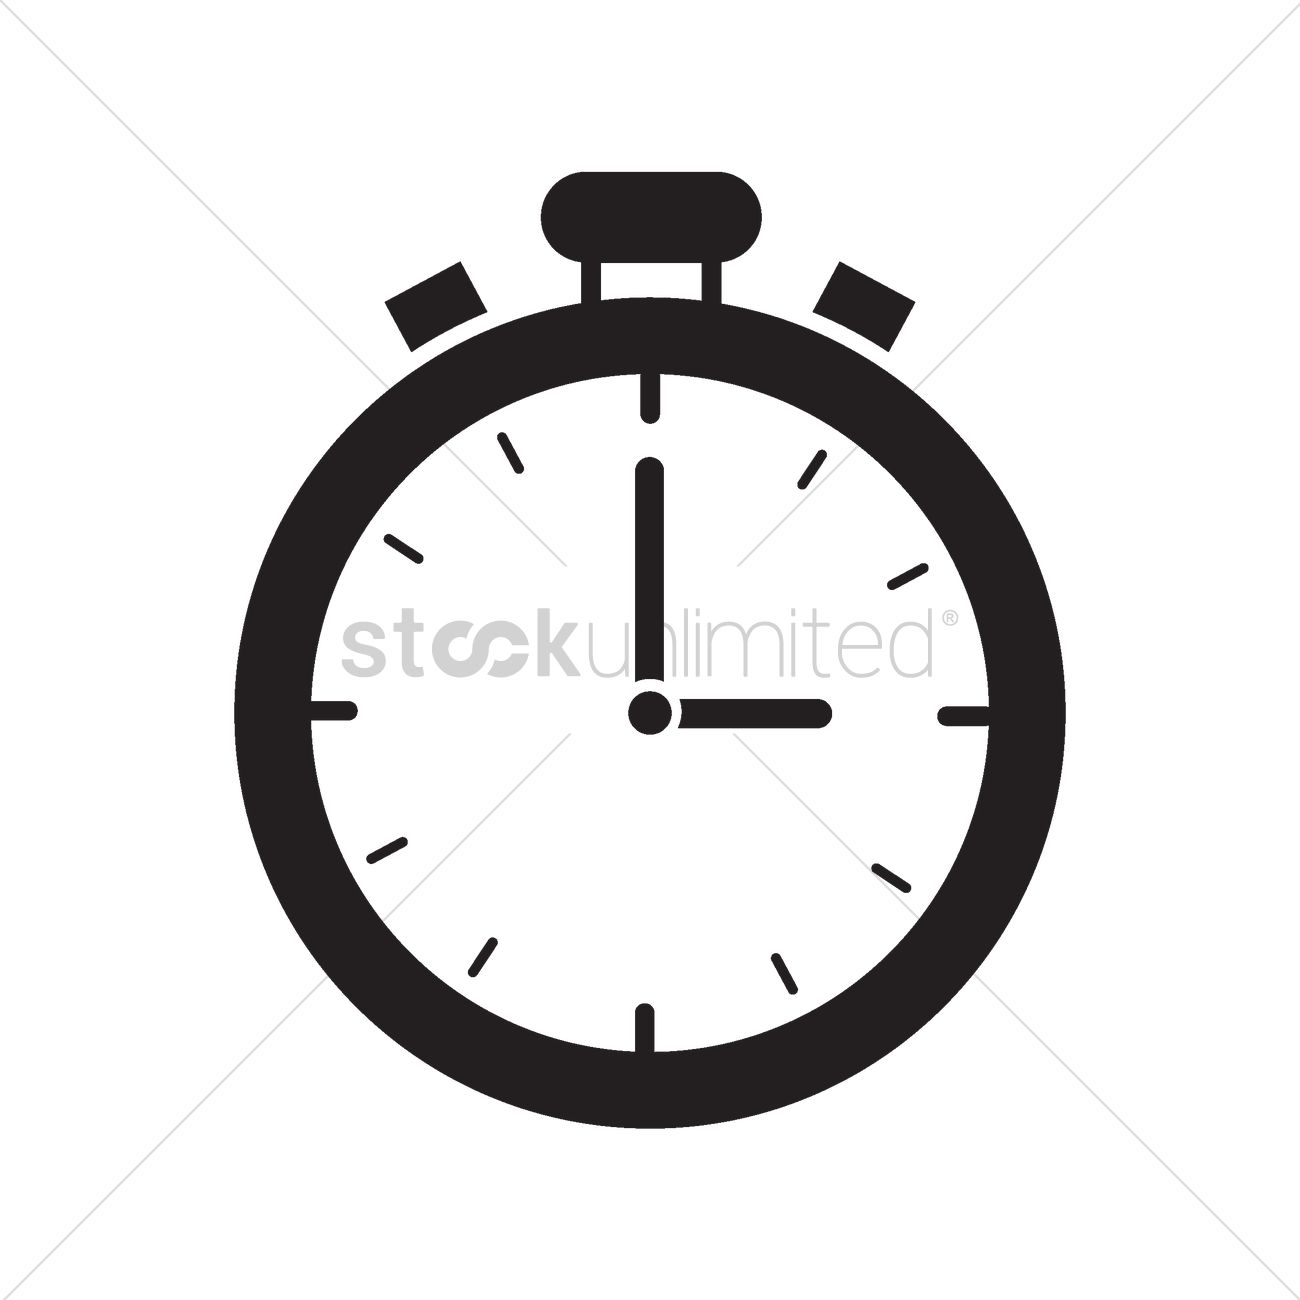 Timer icon Vector Image - 2004808 | StockUnlimited